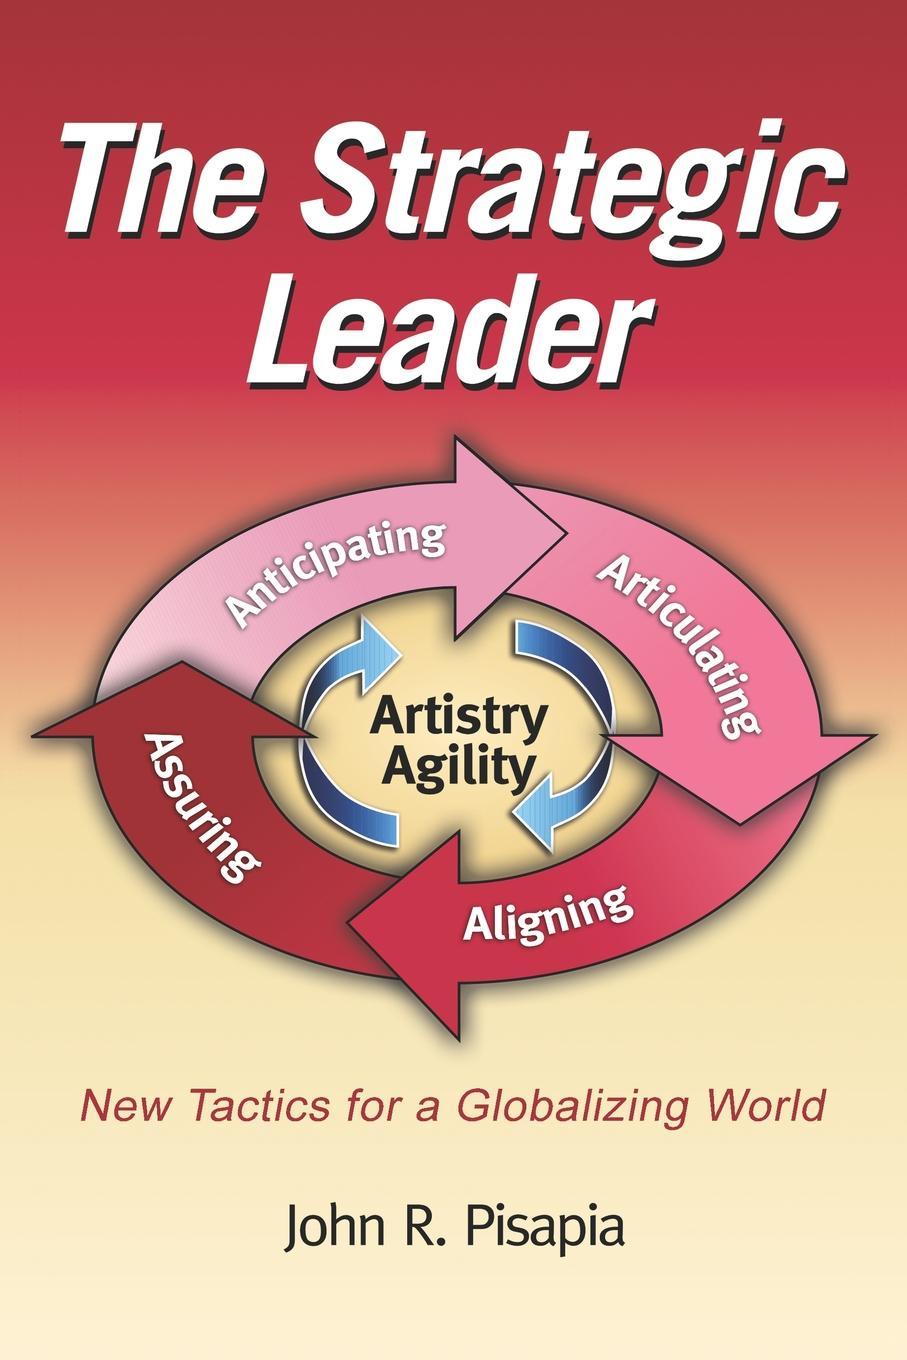 John Pisapia The Strategic Leader New Tactics for a Globalizing World (PB) suzanne morse w smart communities how citizens and local leaders can use strategic thinking to build a brighter future